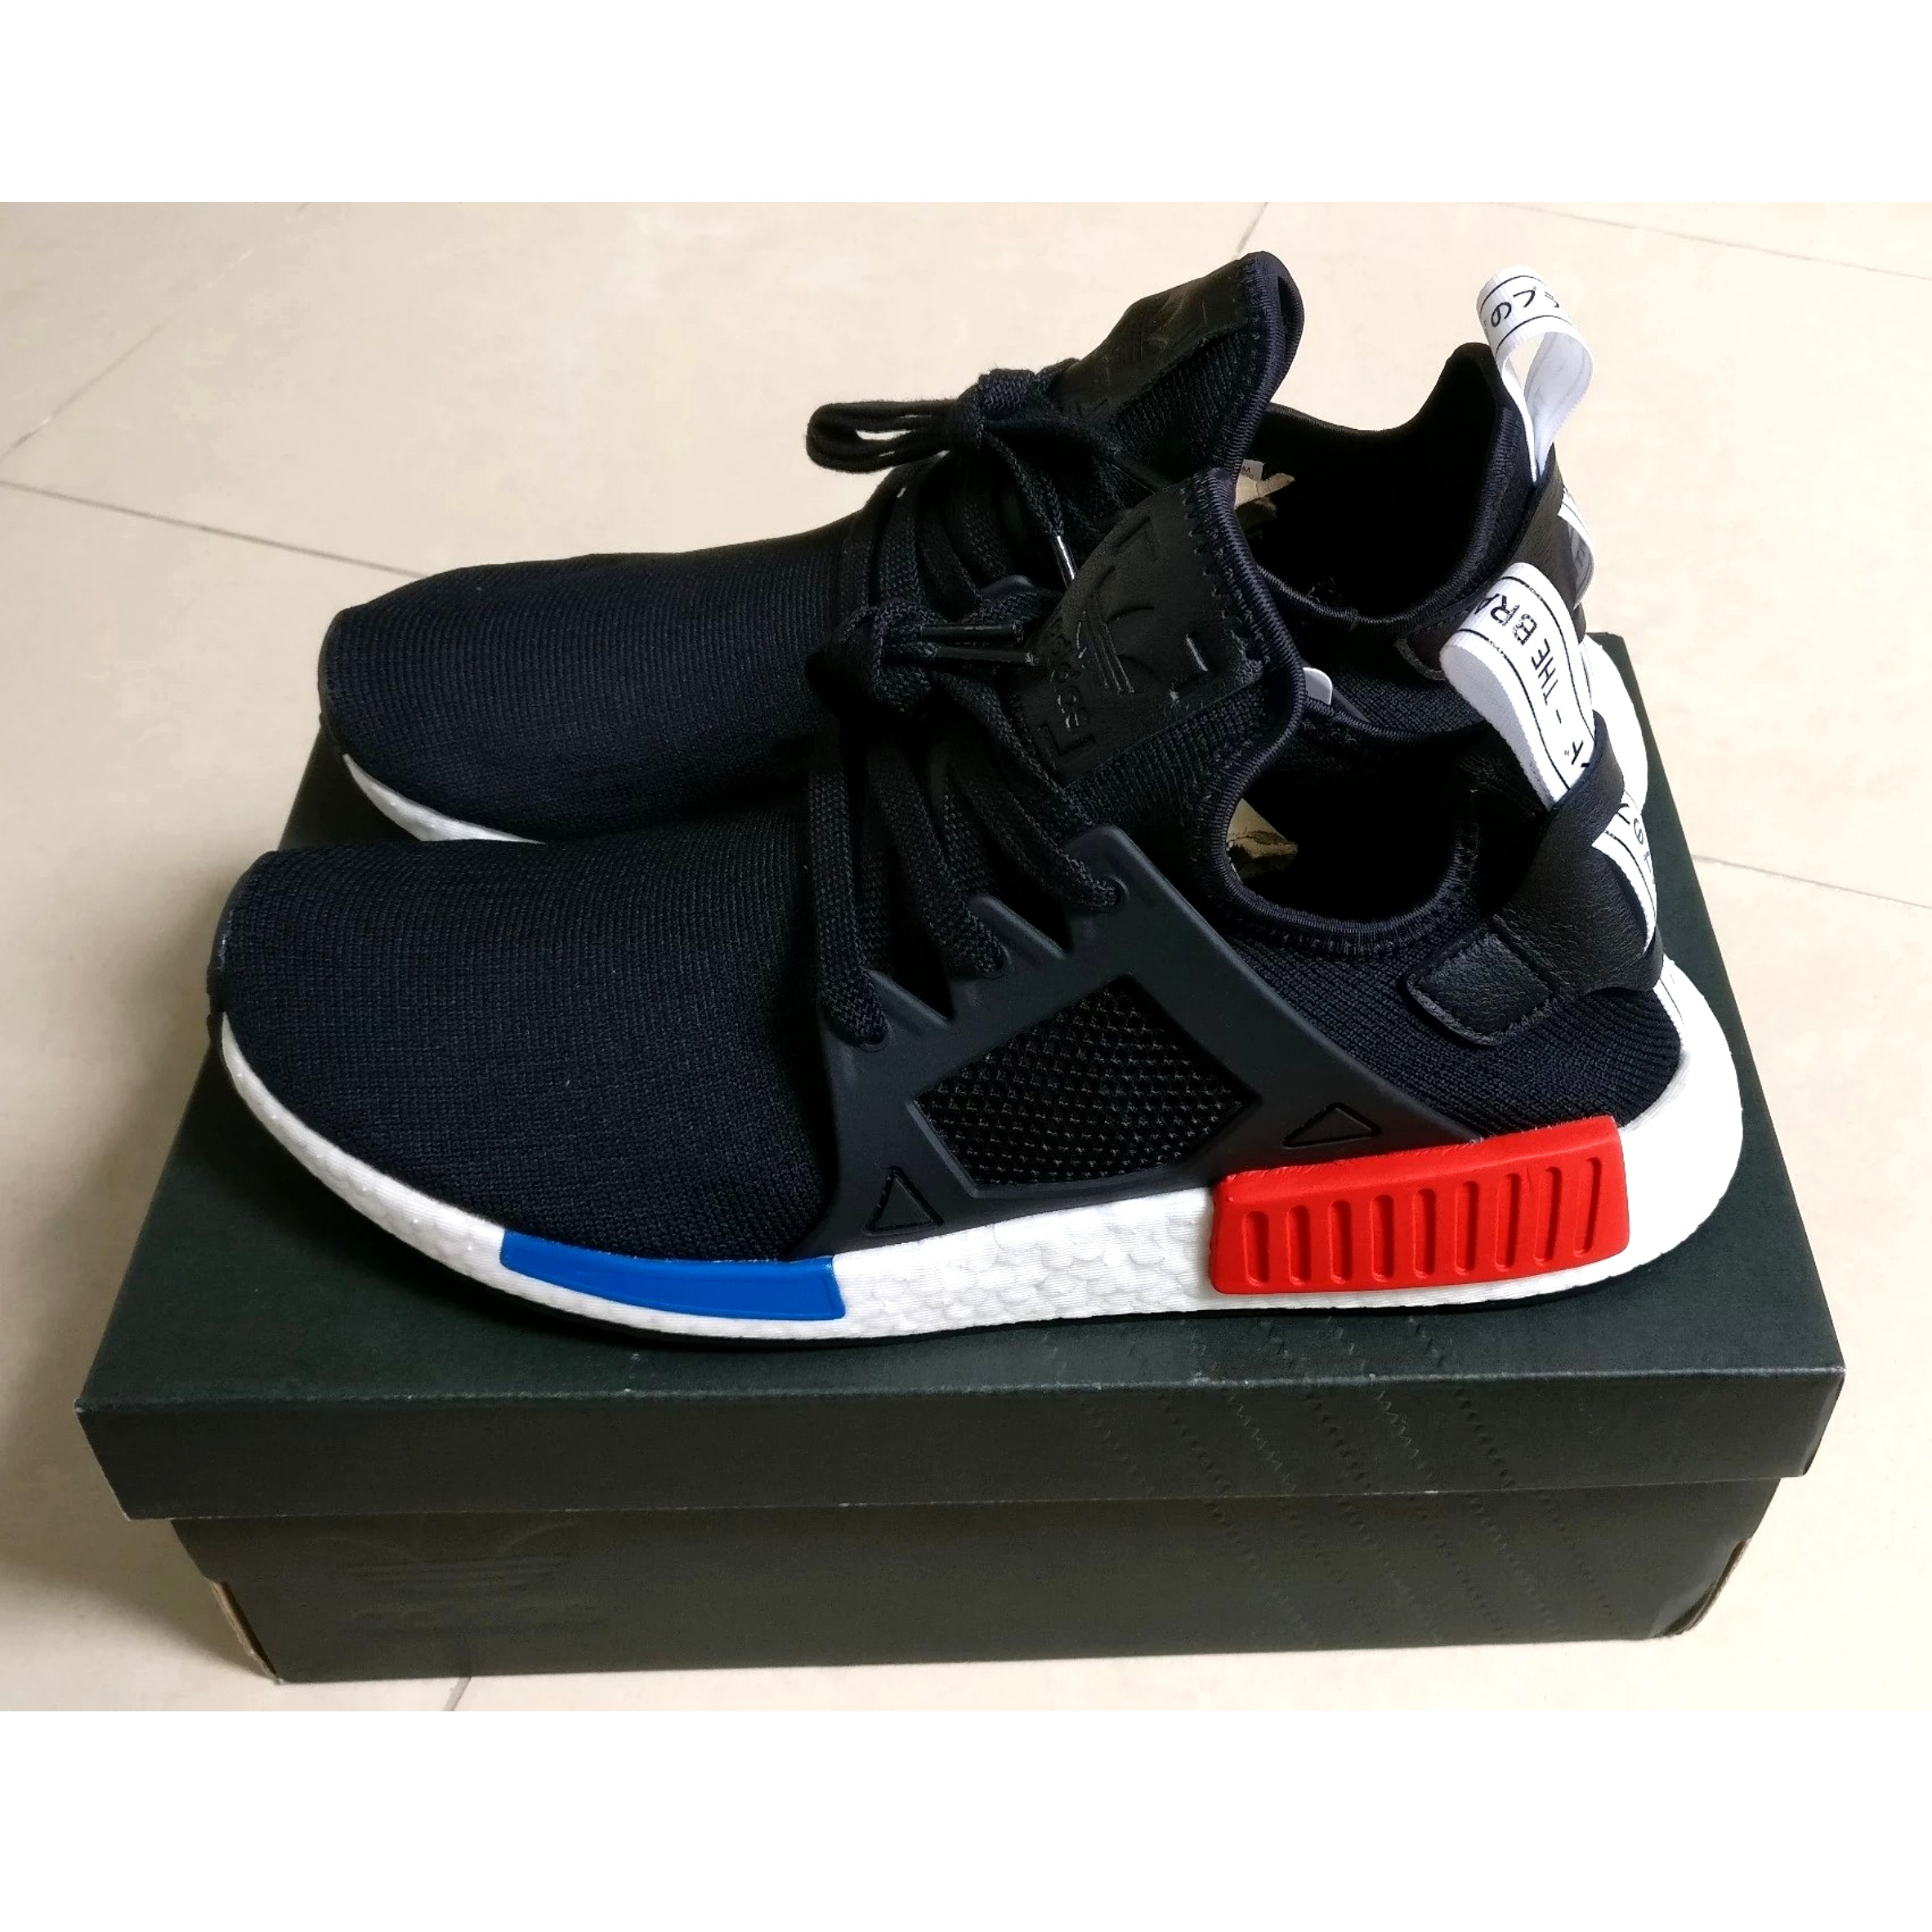 e38d42426 Adidas Nmd XR1 PK OG (BN in box) 100% Authentic with Receipt ...